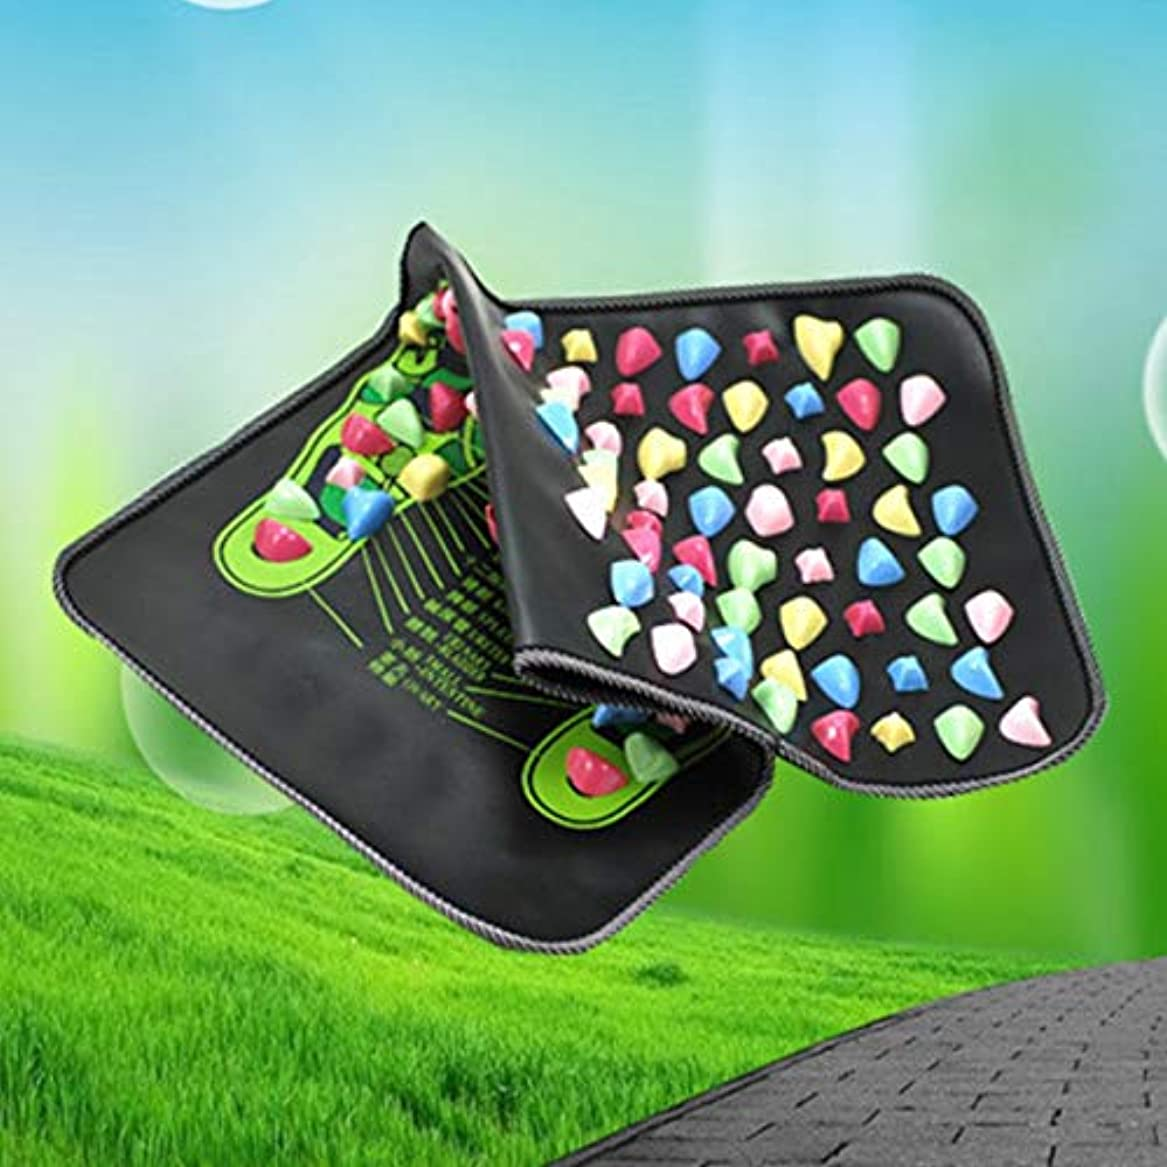 最大限お祝い拾うReflexology Walk Stone Foot Leg Pain Relieve Relief Walk Massager Mat Health Care Acupressure Mat Pad massageador